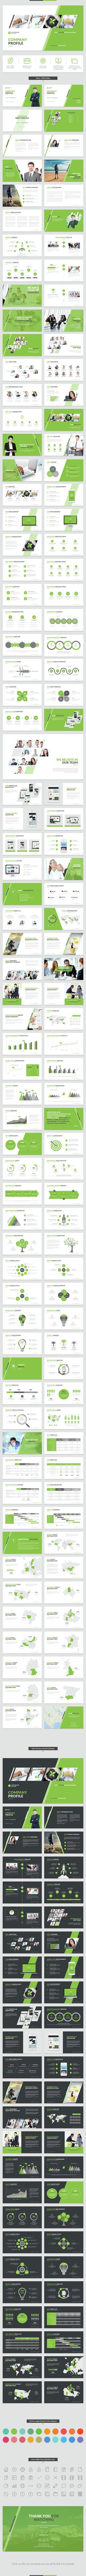 Company Profile PowerPoint Presentation Template. Download here…